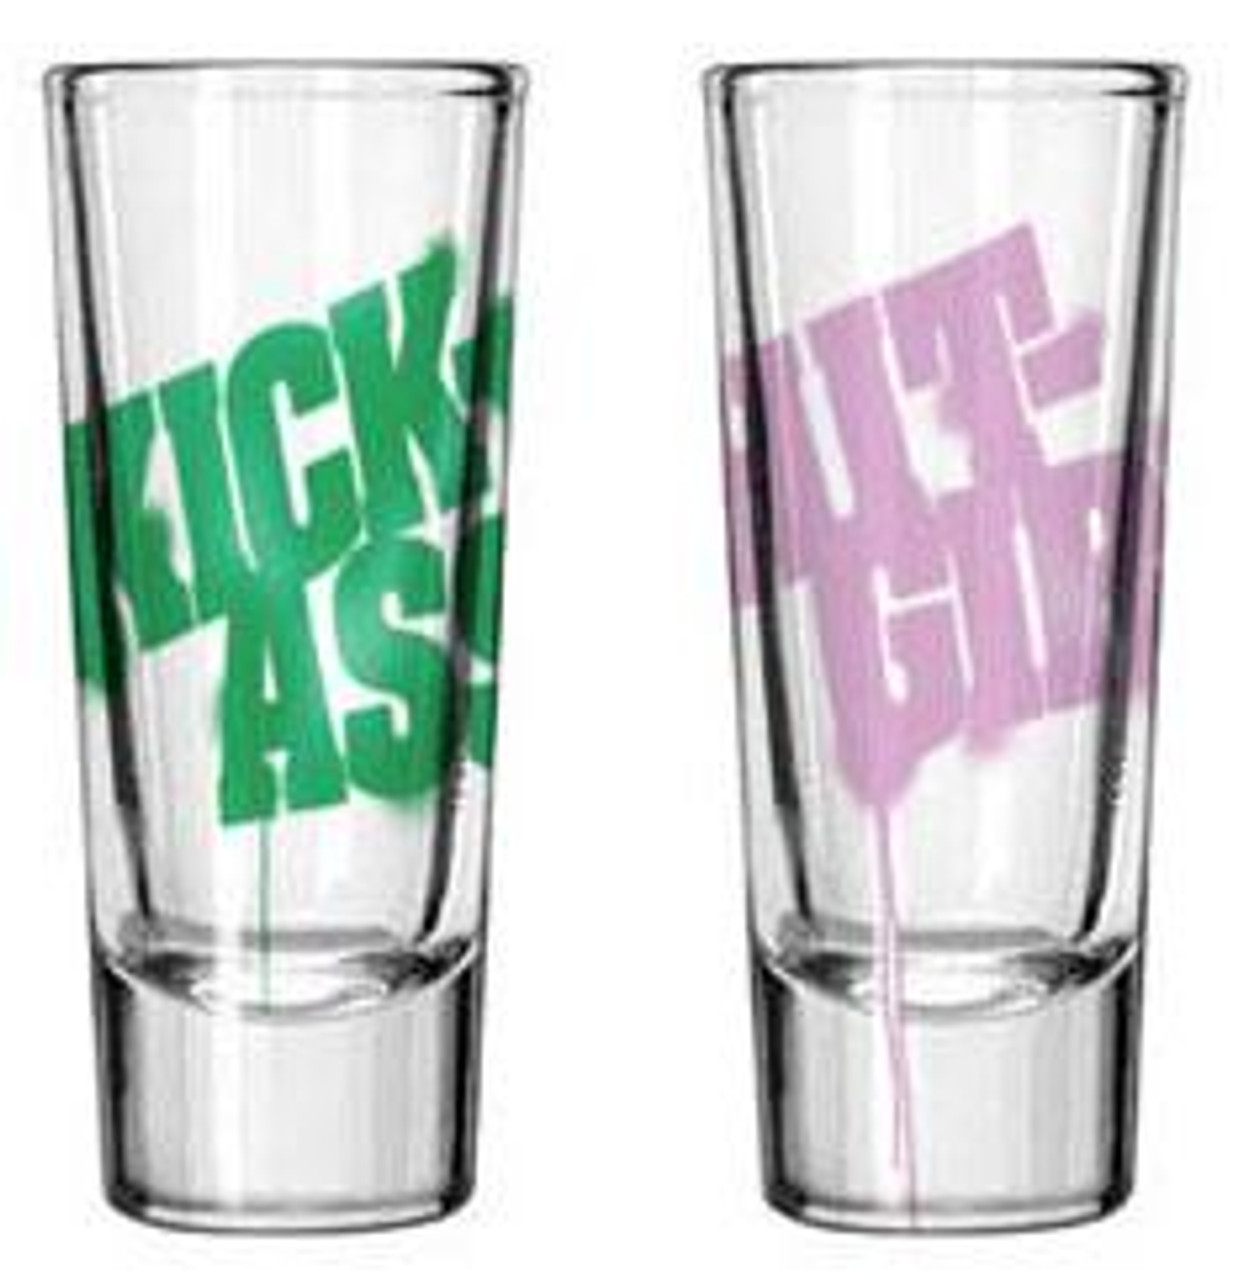 Kick-Ass & Hit Girl Shot Glass Set